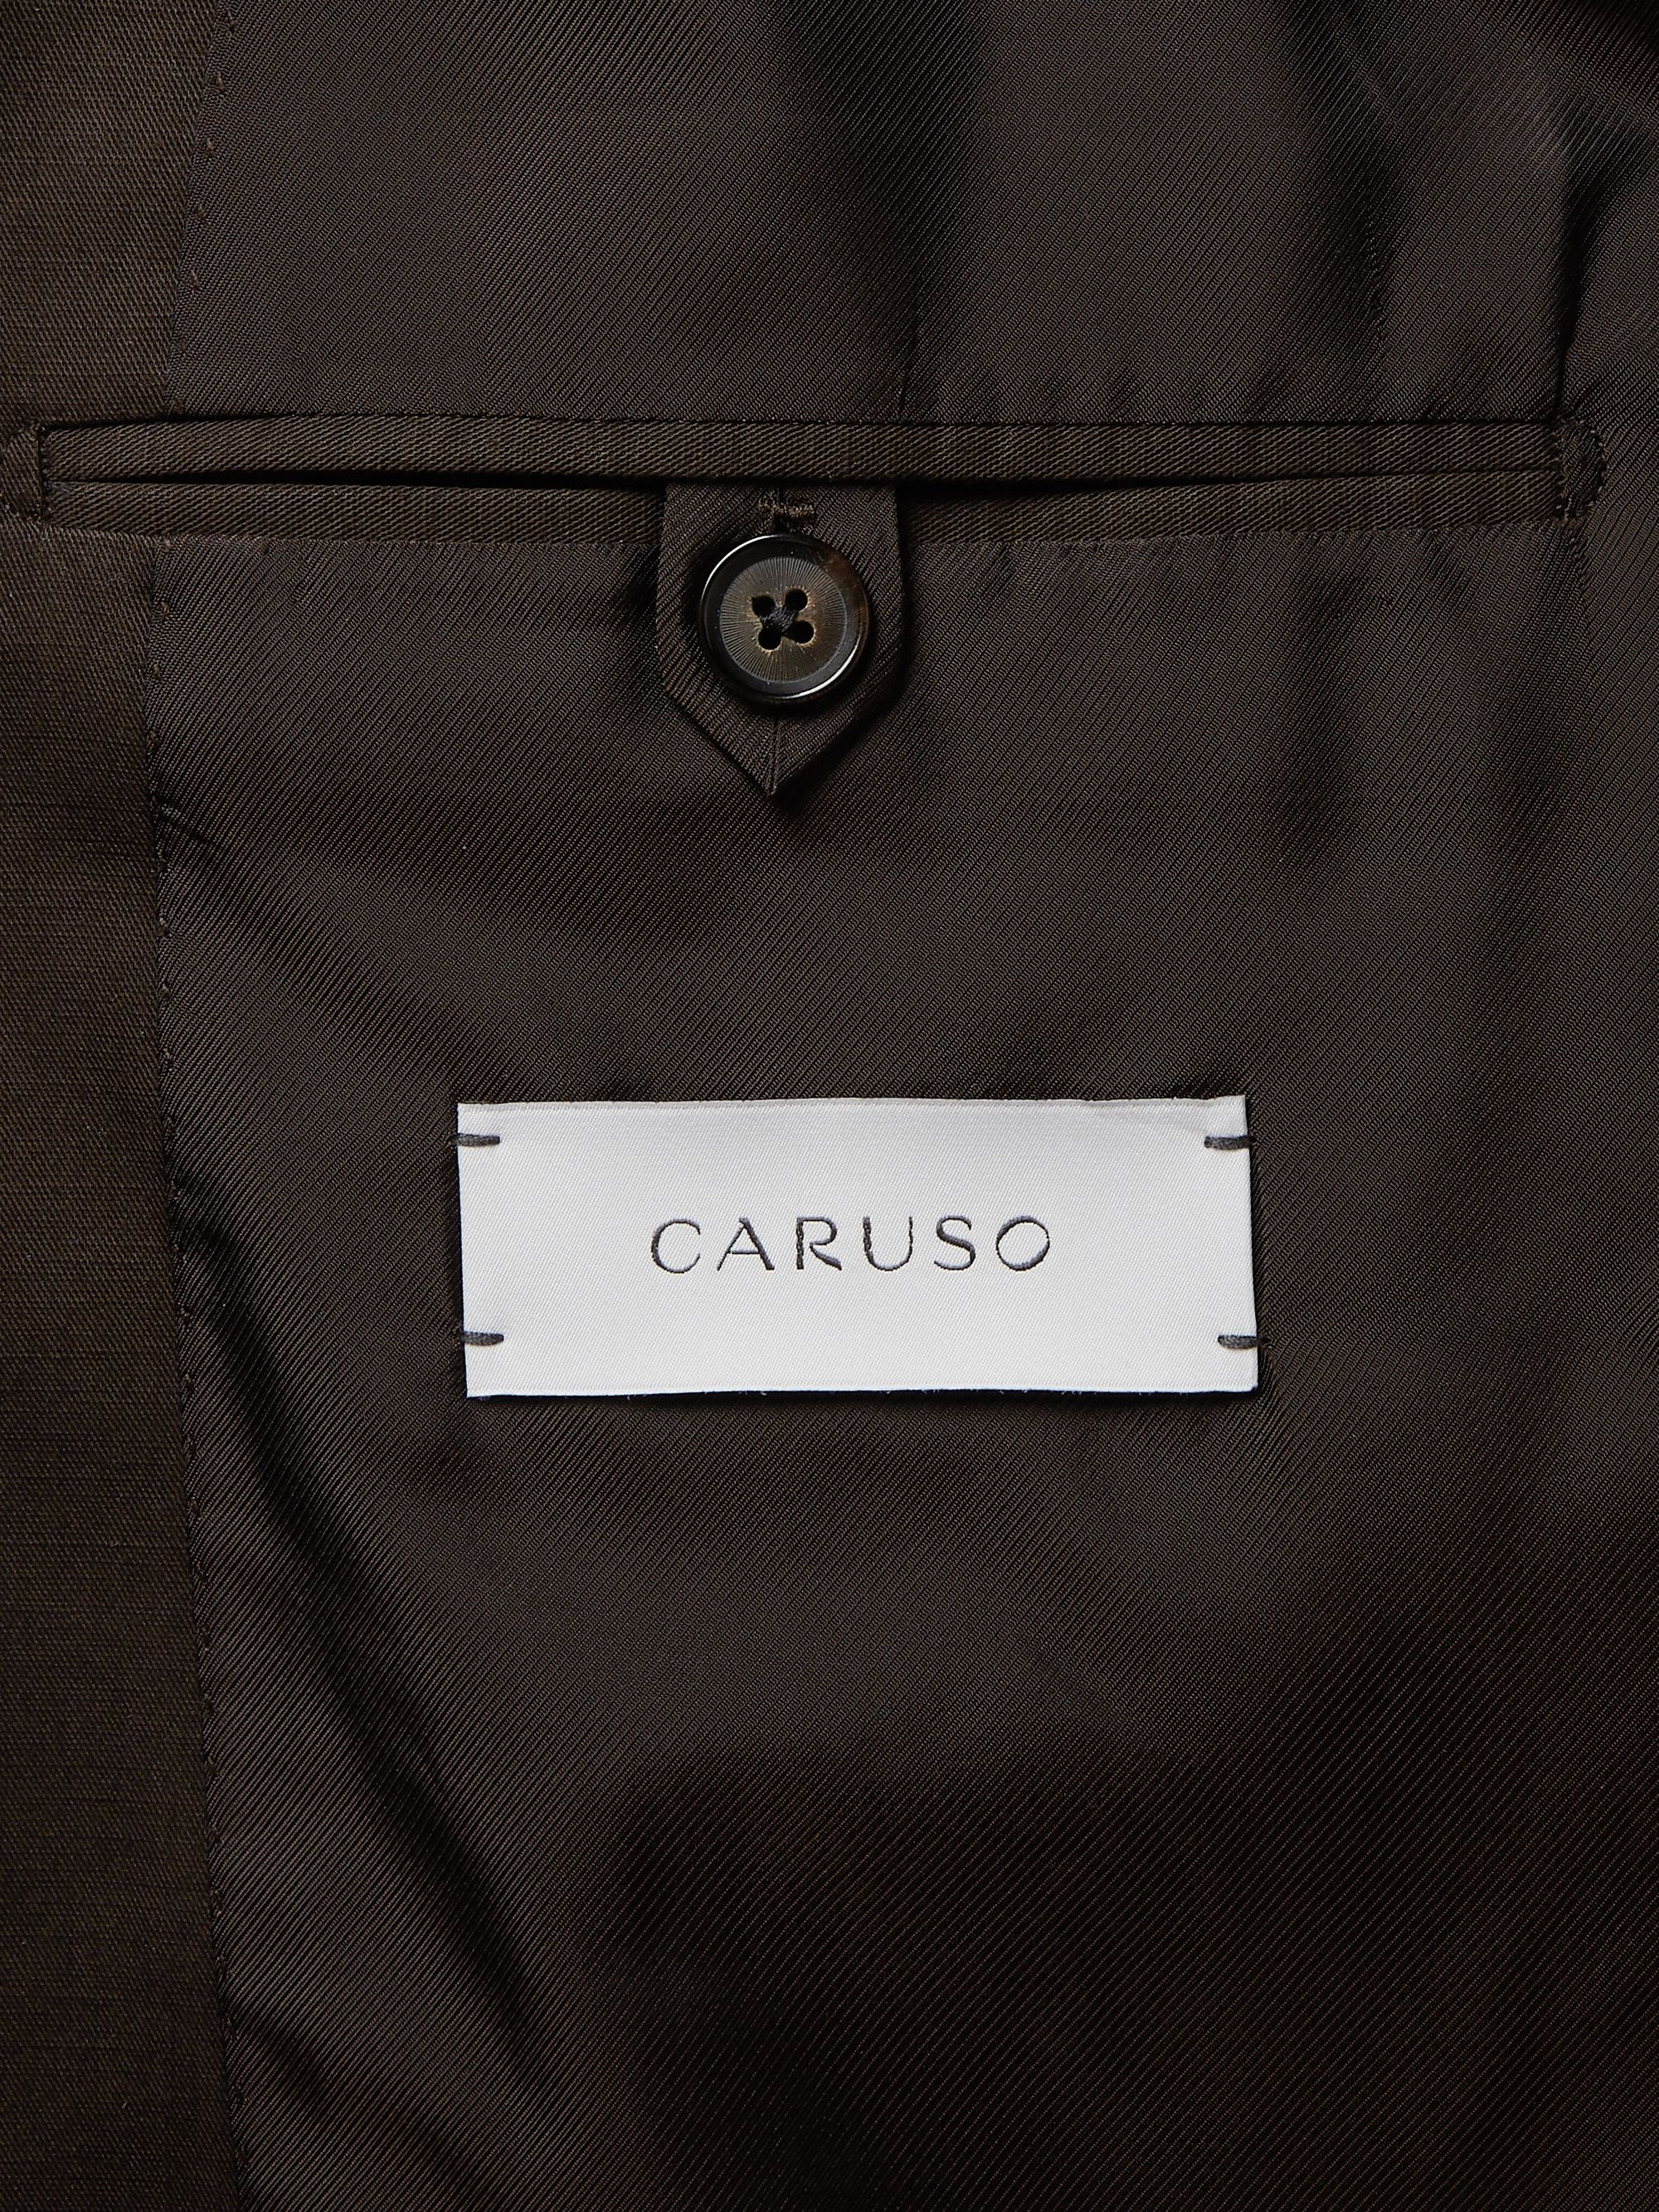 Caruso Dark-Brown Slim-Fit Cotton, Linen and Silk-Blend Suit Jacket